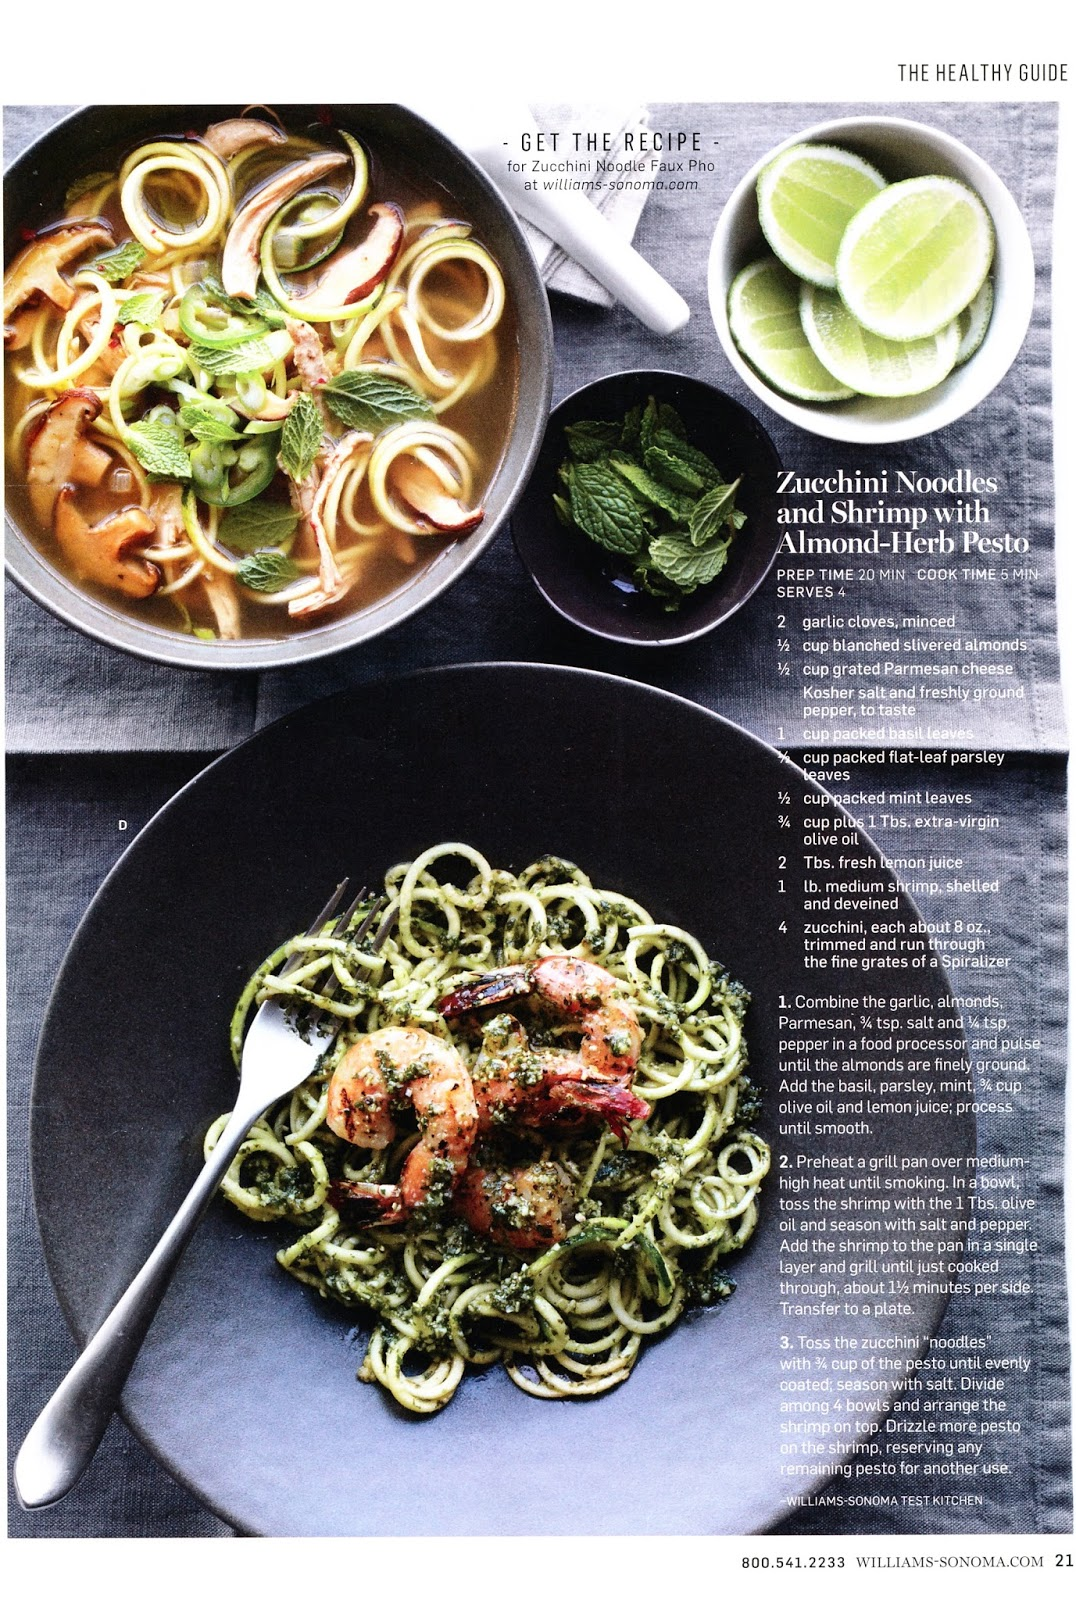 Recipe: Zucchini Noodles and Shrimp with Almond-Herb Pesto